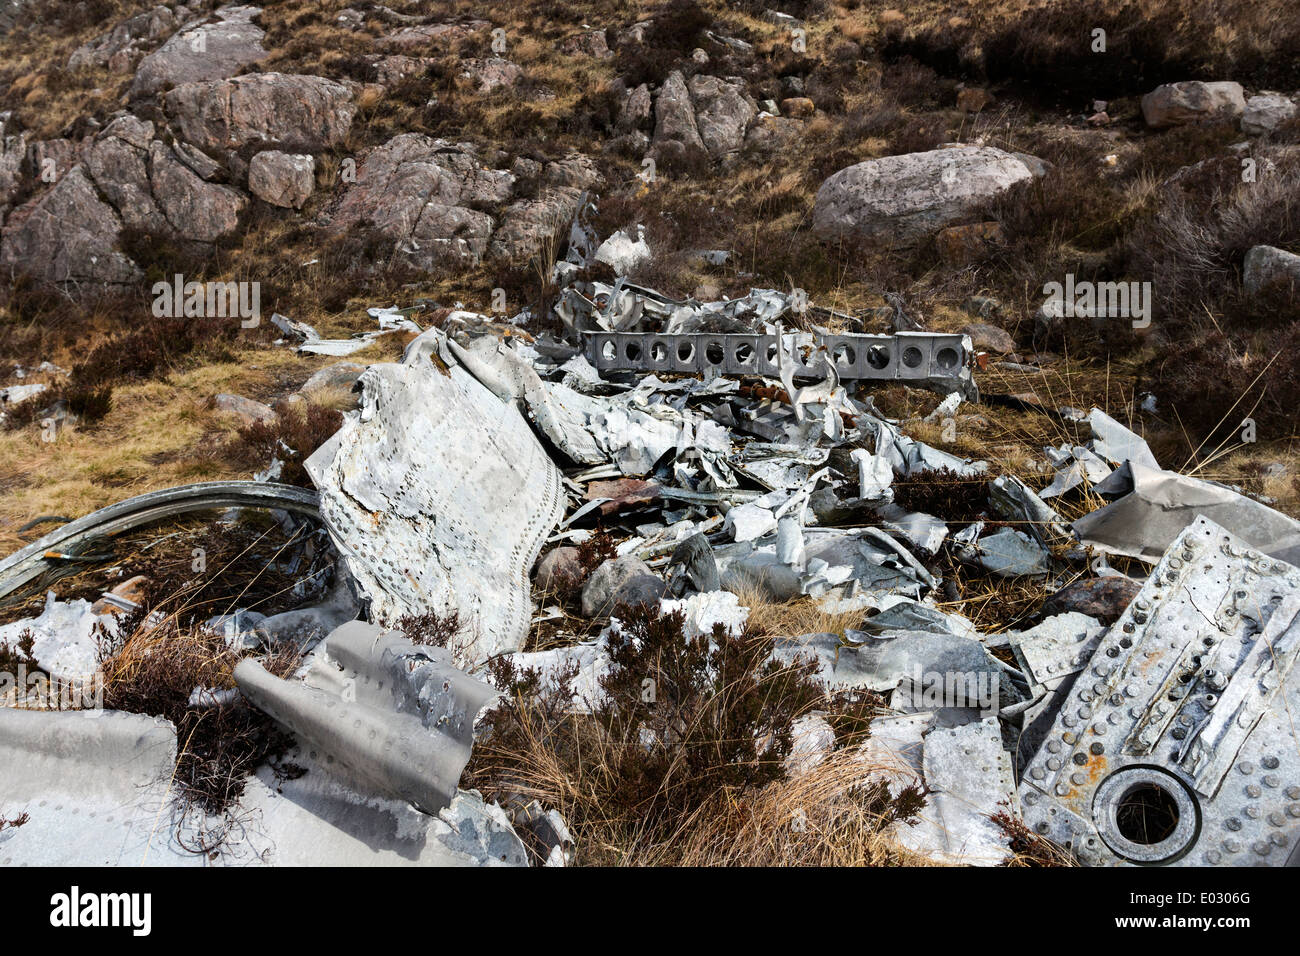 Wreckage from a B-24H Liberator Bomber serial no 42-95095  which crashed on 13th June 1945 Fairy Lochs Gairloch Scotland - Stock Image